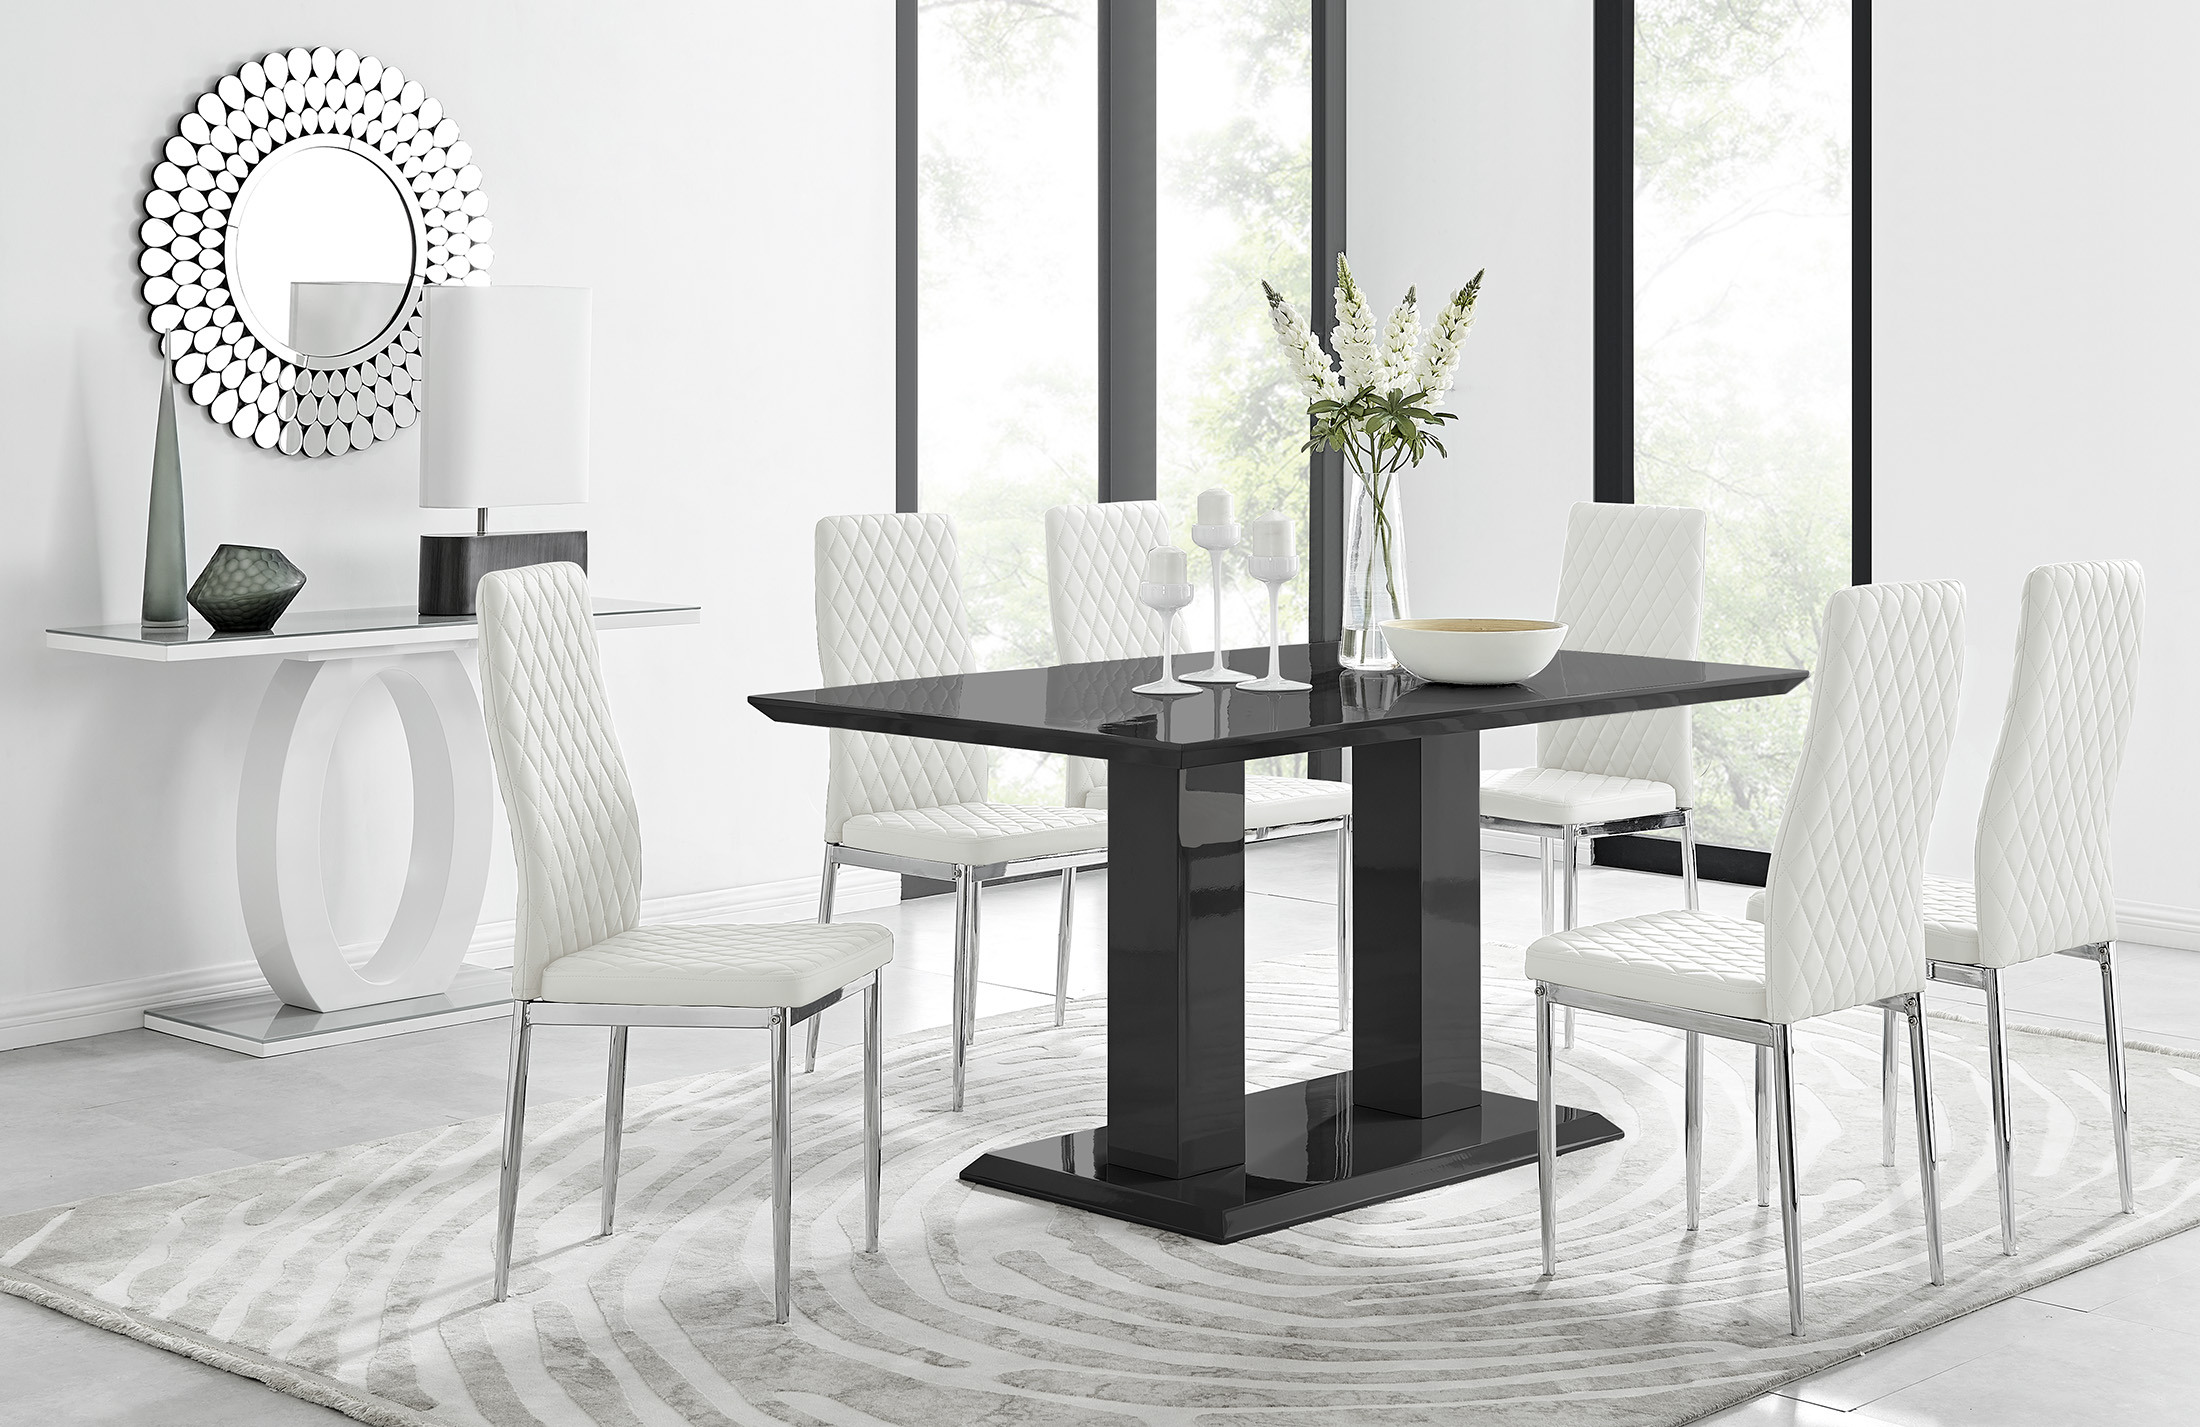 Imperia Black Gloss Dining Table 6, Black Dining Table Chairs Set Of 6